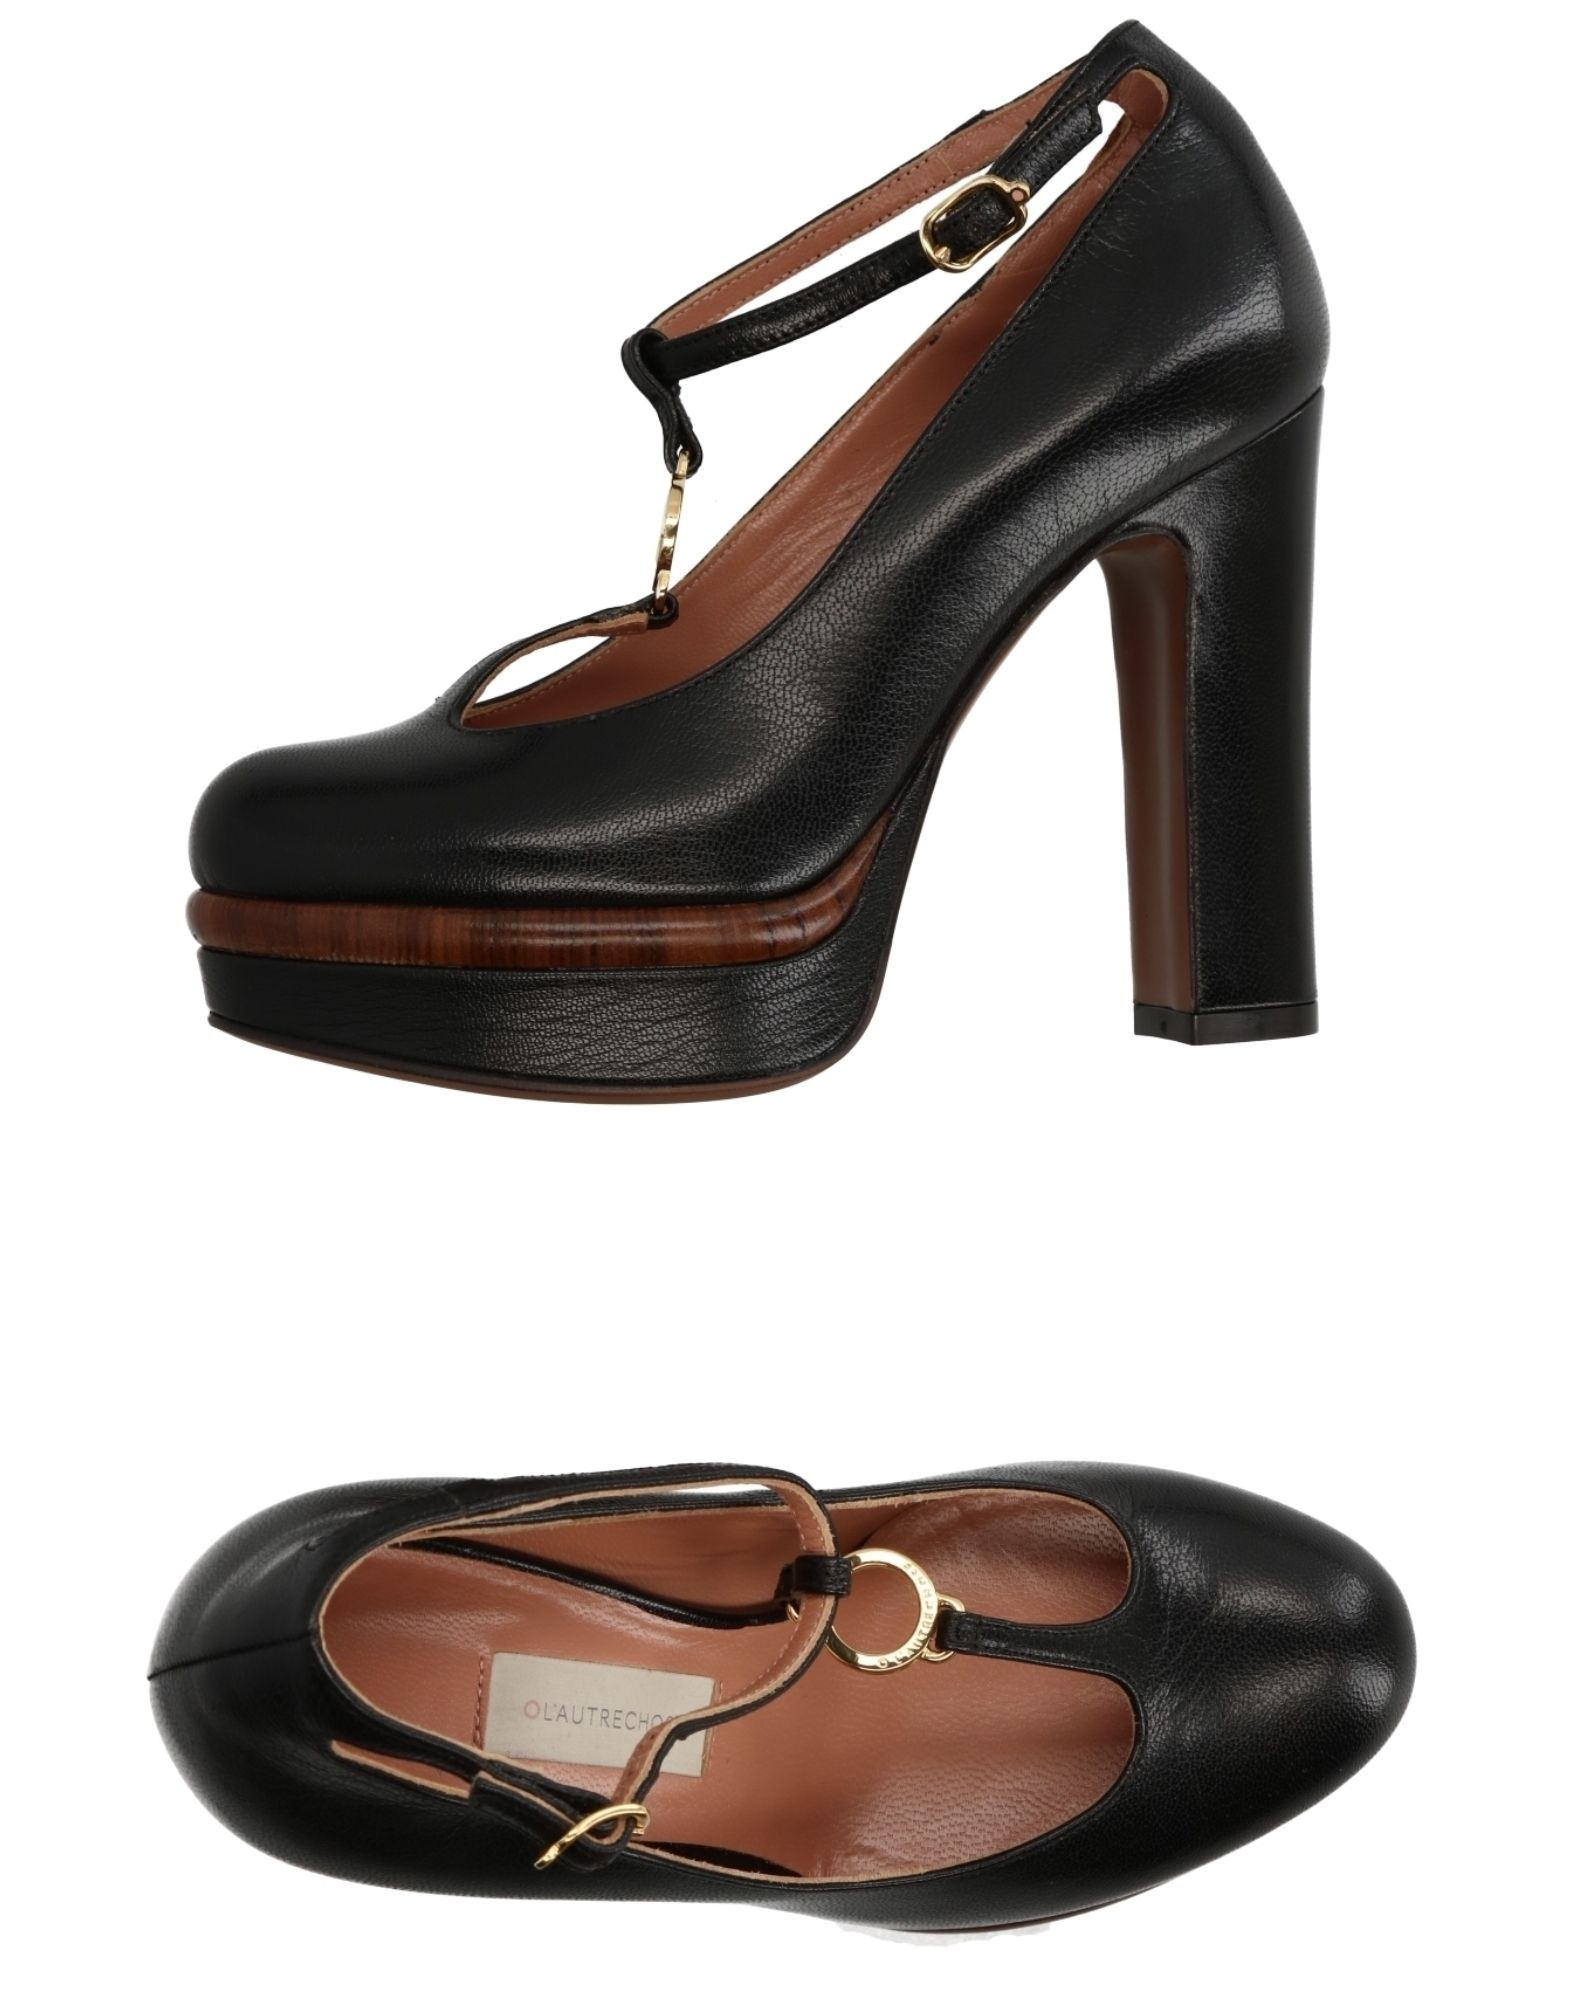 Stilvolle billige Schuhe L' Autre Chose Pumps Damen  11263366TM